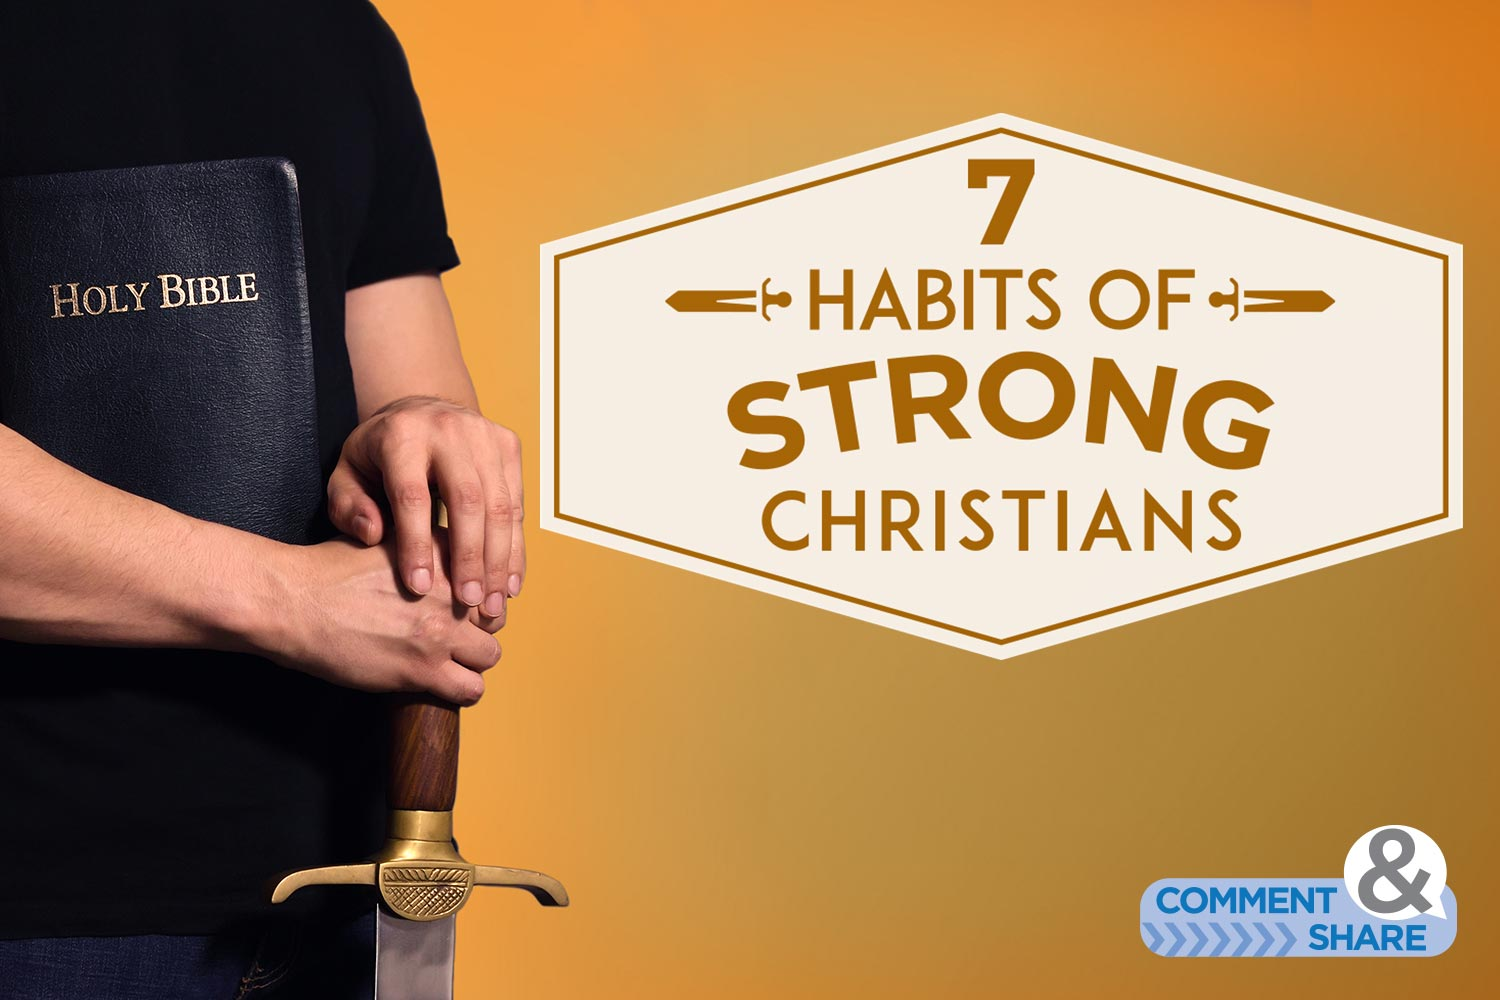 7 Habits of Strong Christians